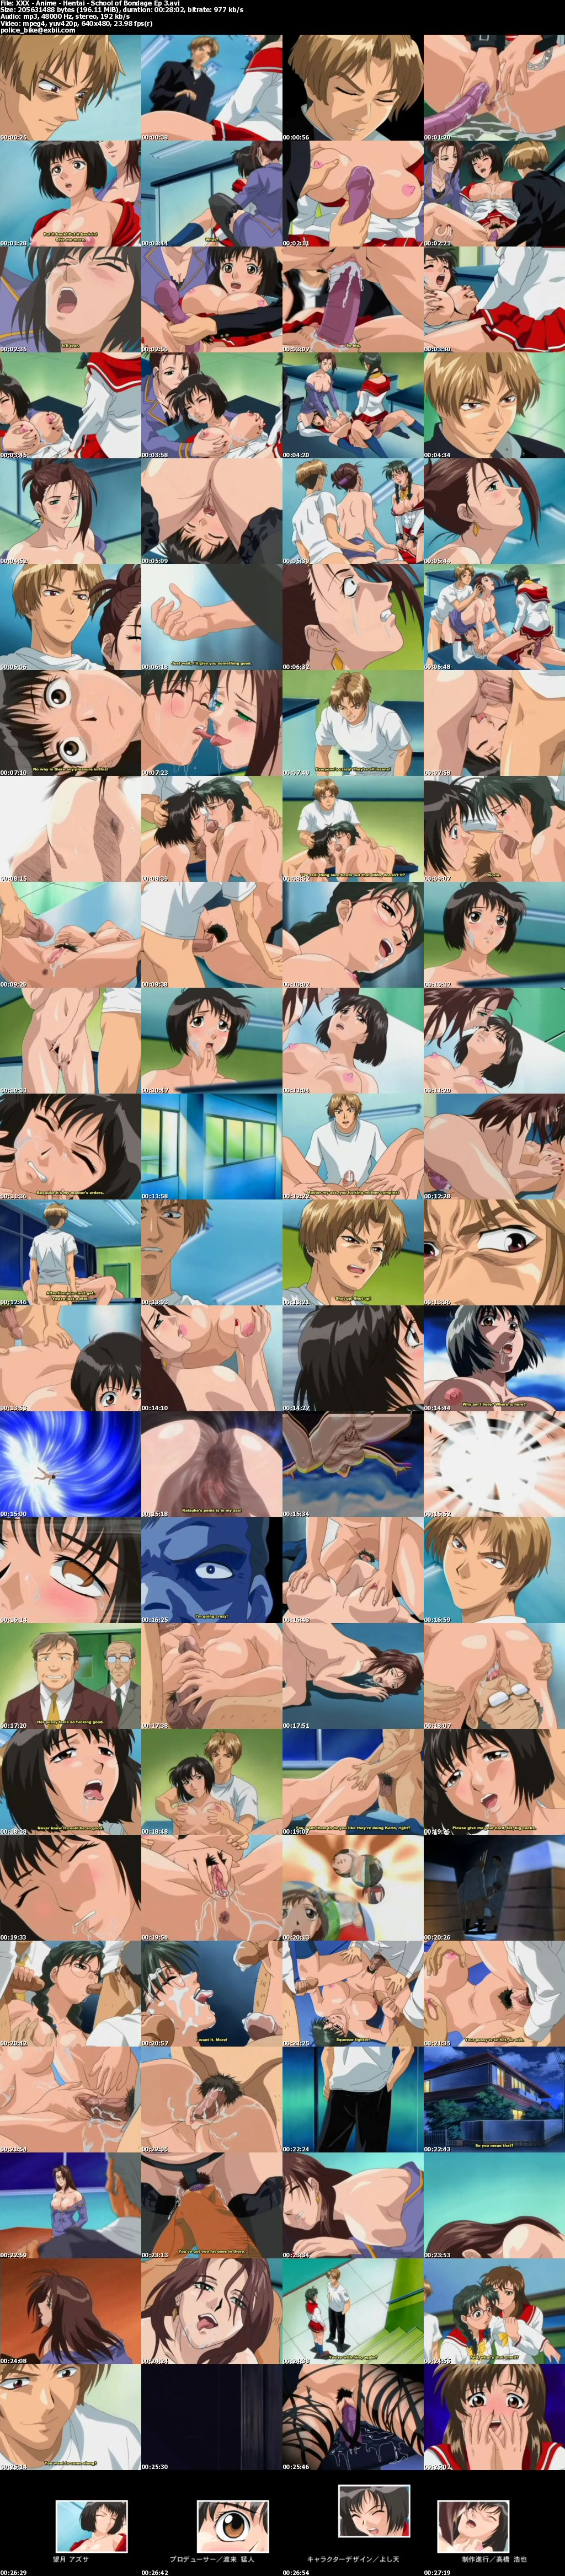 Anime xxx movie free download fucked picture